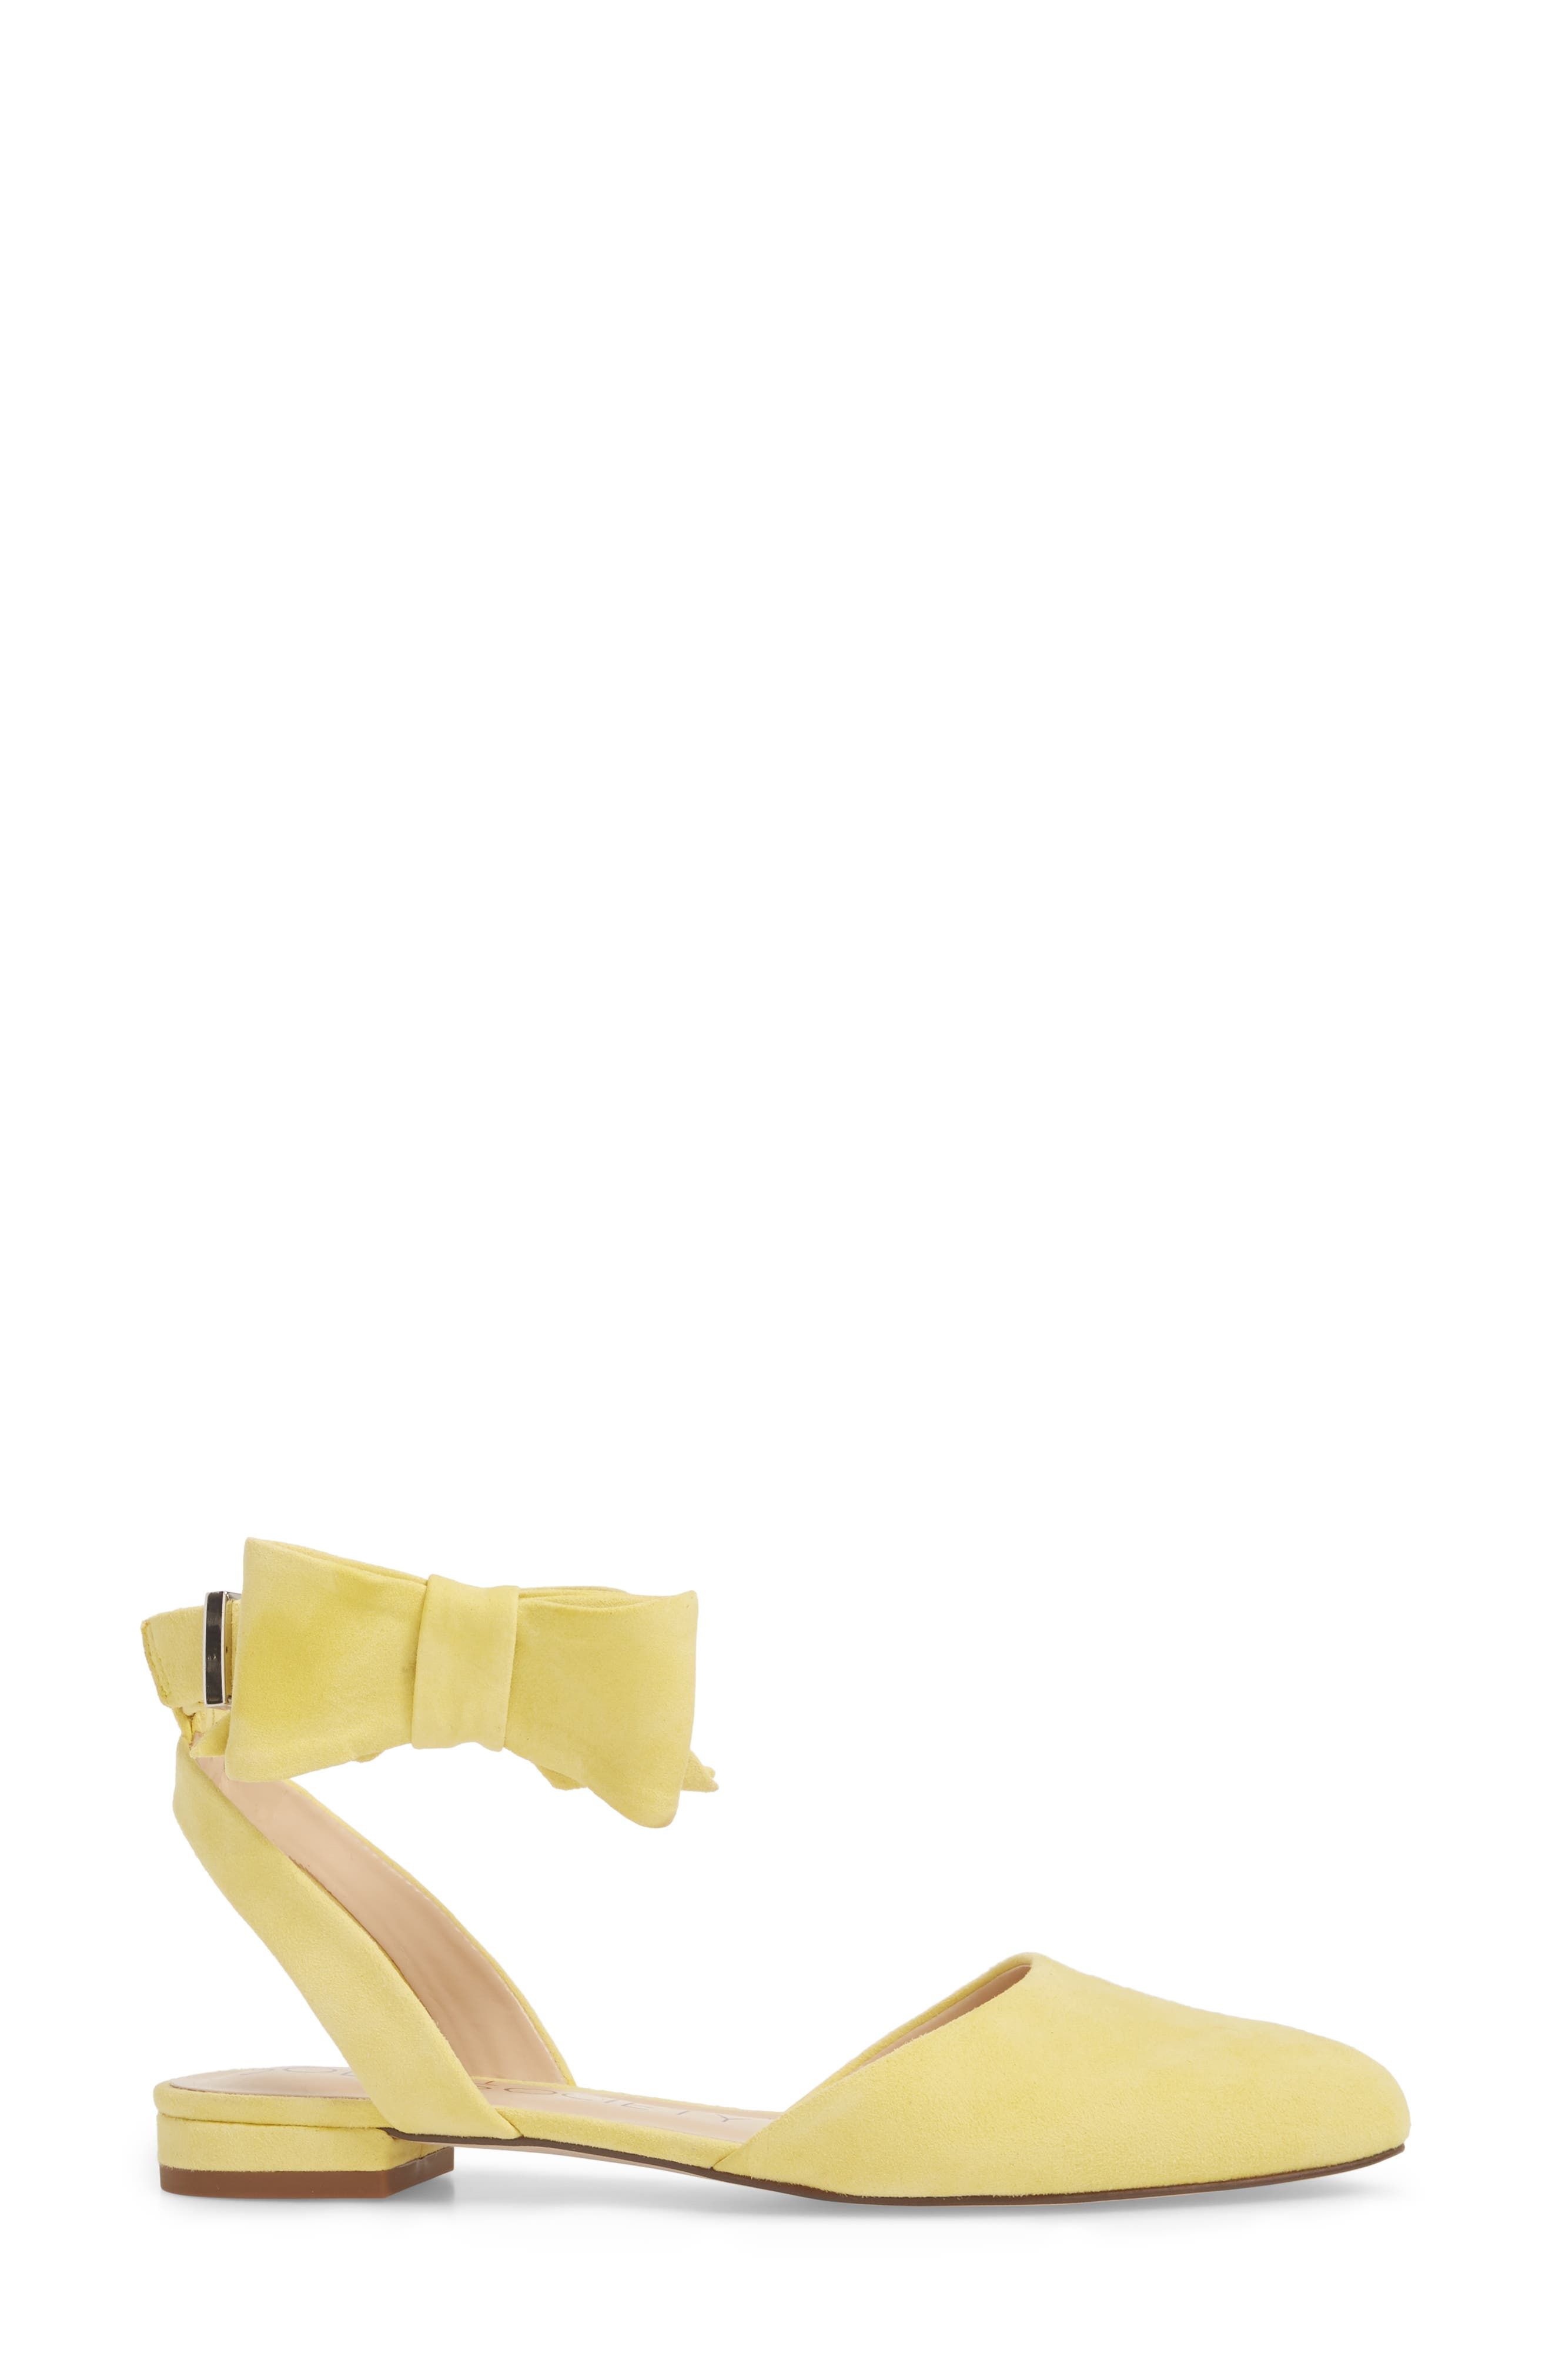 Pollie Flat,                             Alternate thumbnail 3, color,                             Pale Yellow Fabric